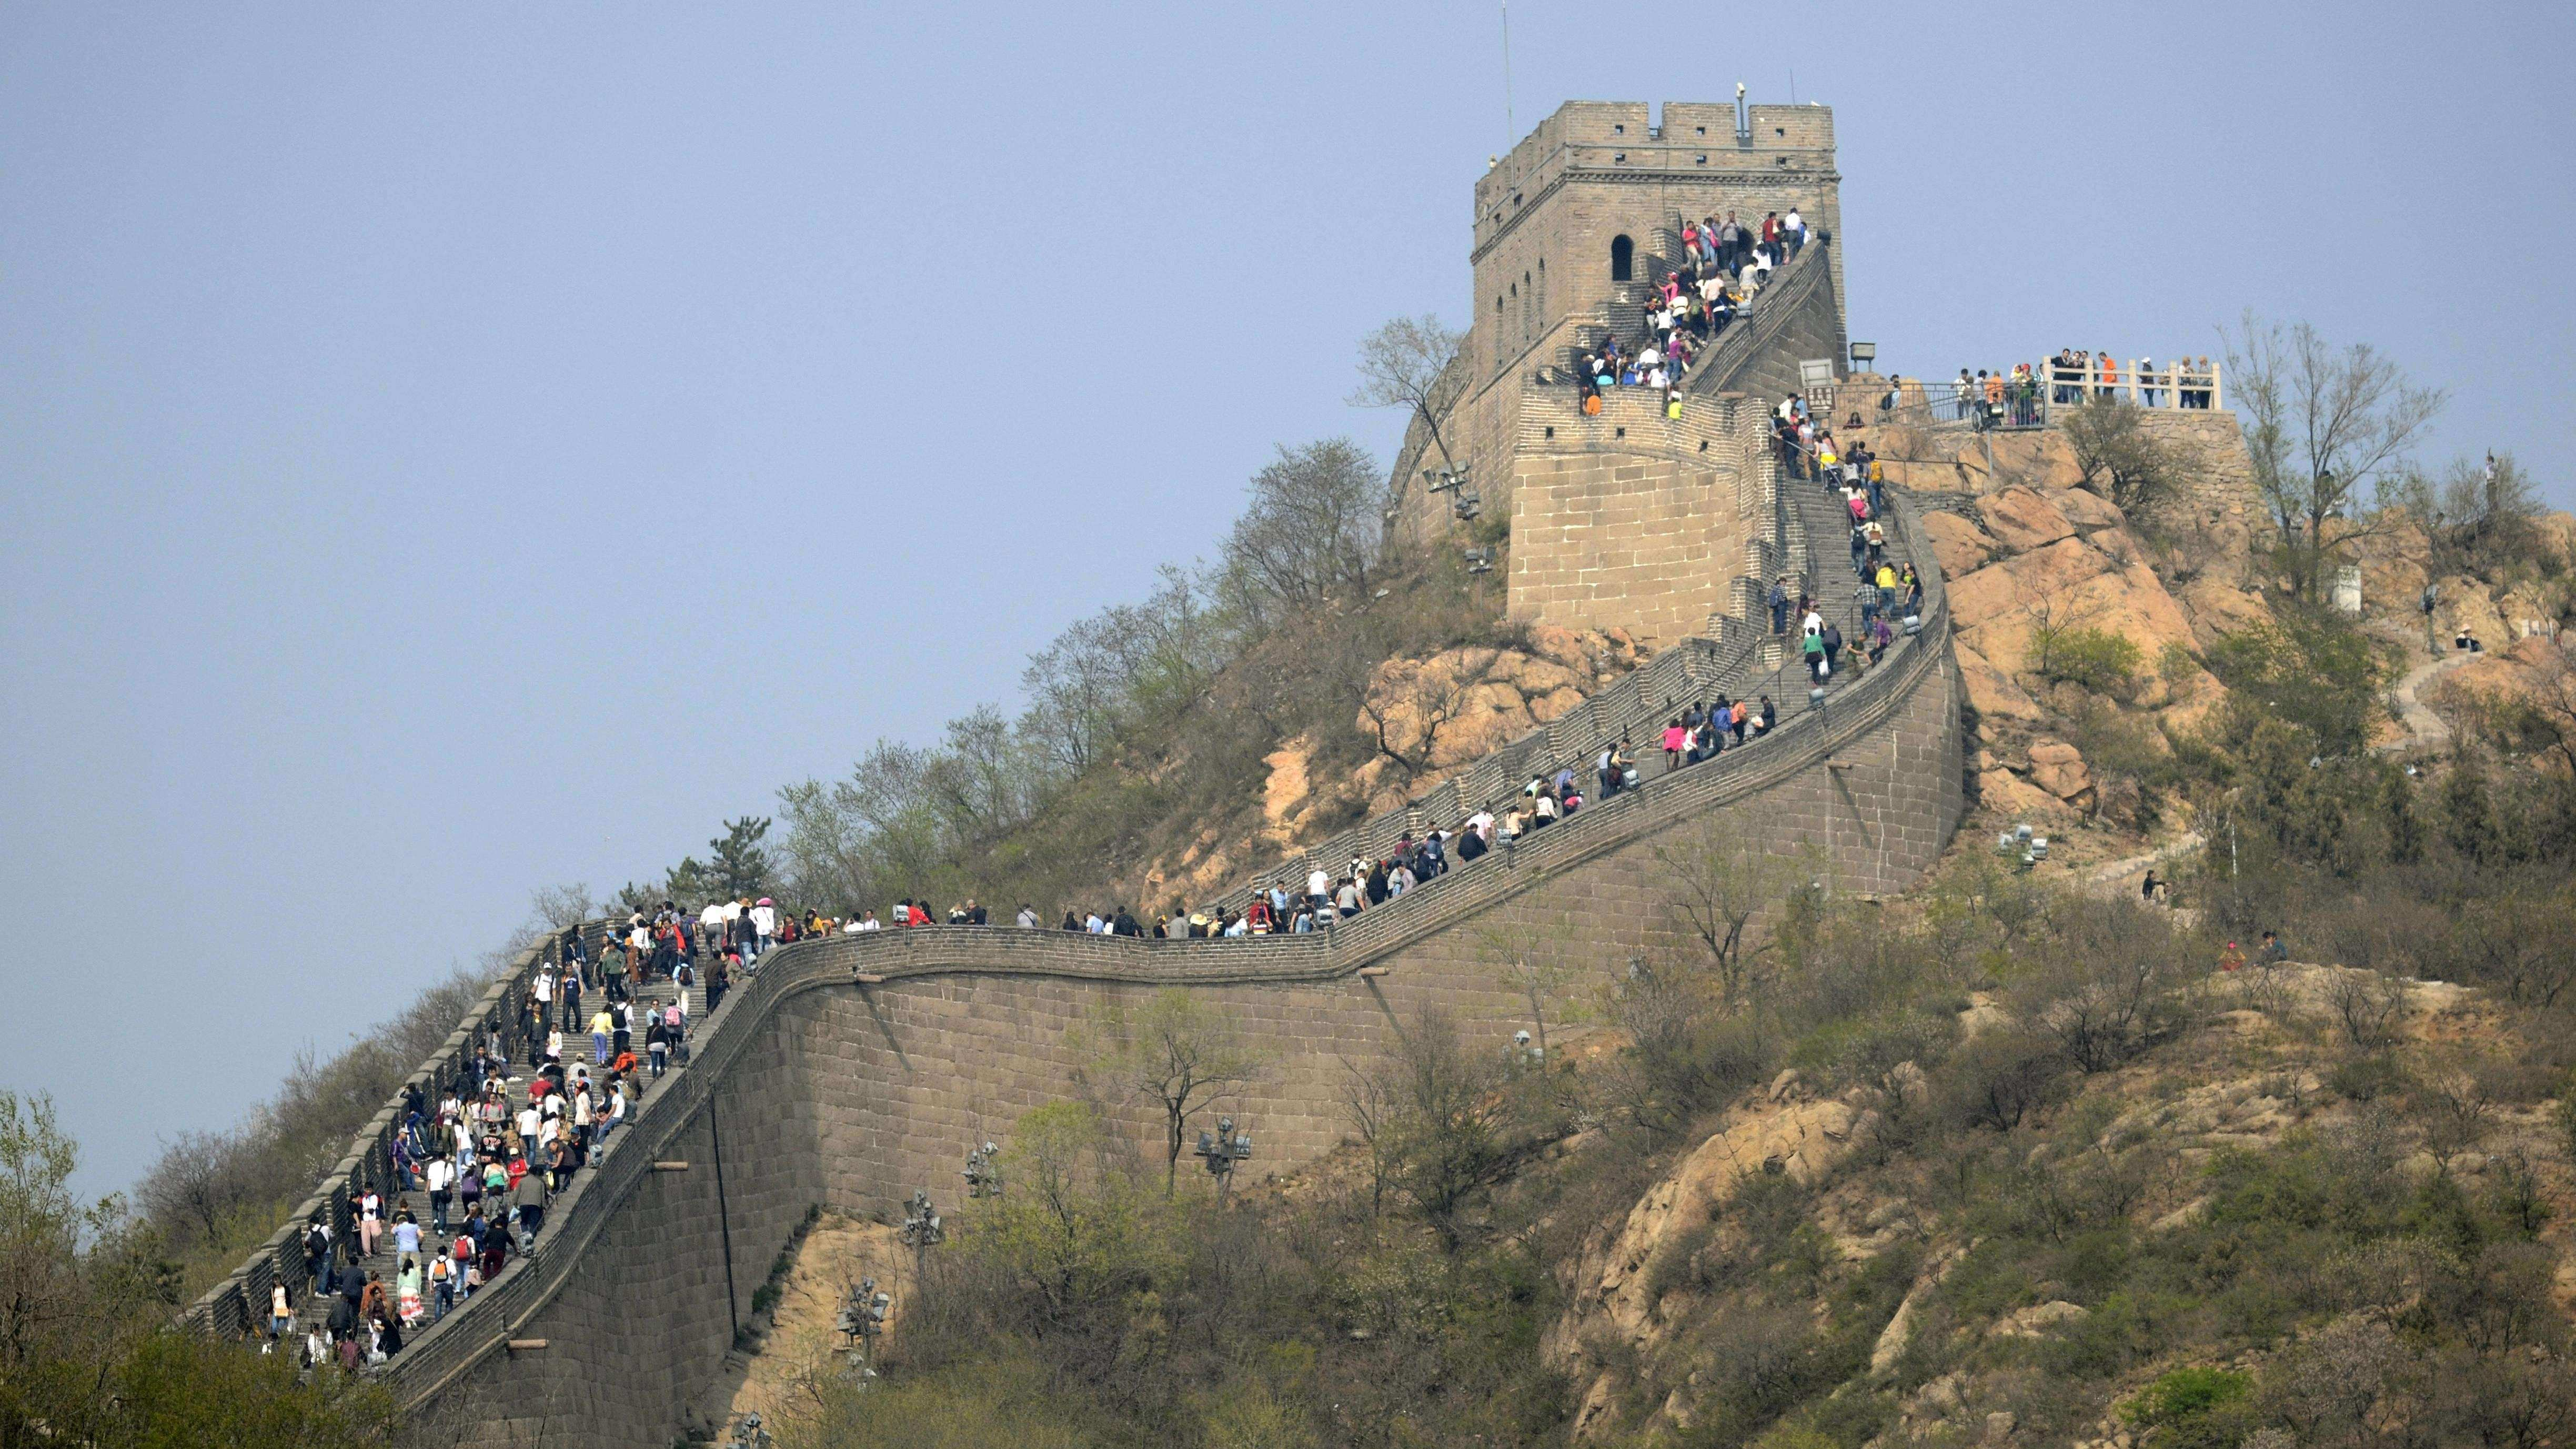 Fodor s tells tourists to avoid Great Wall of China and Taj Mahal in